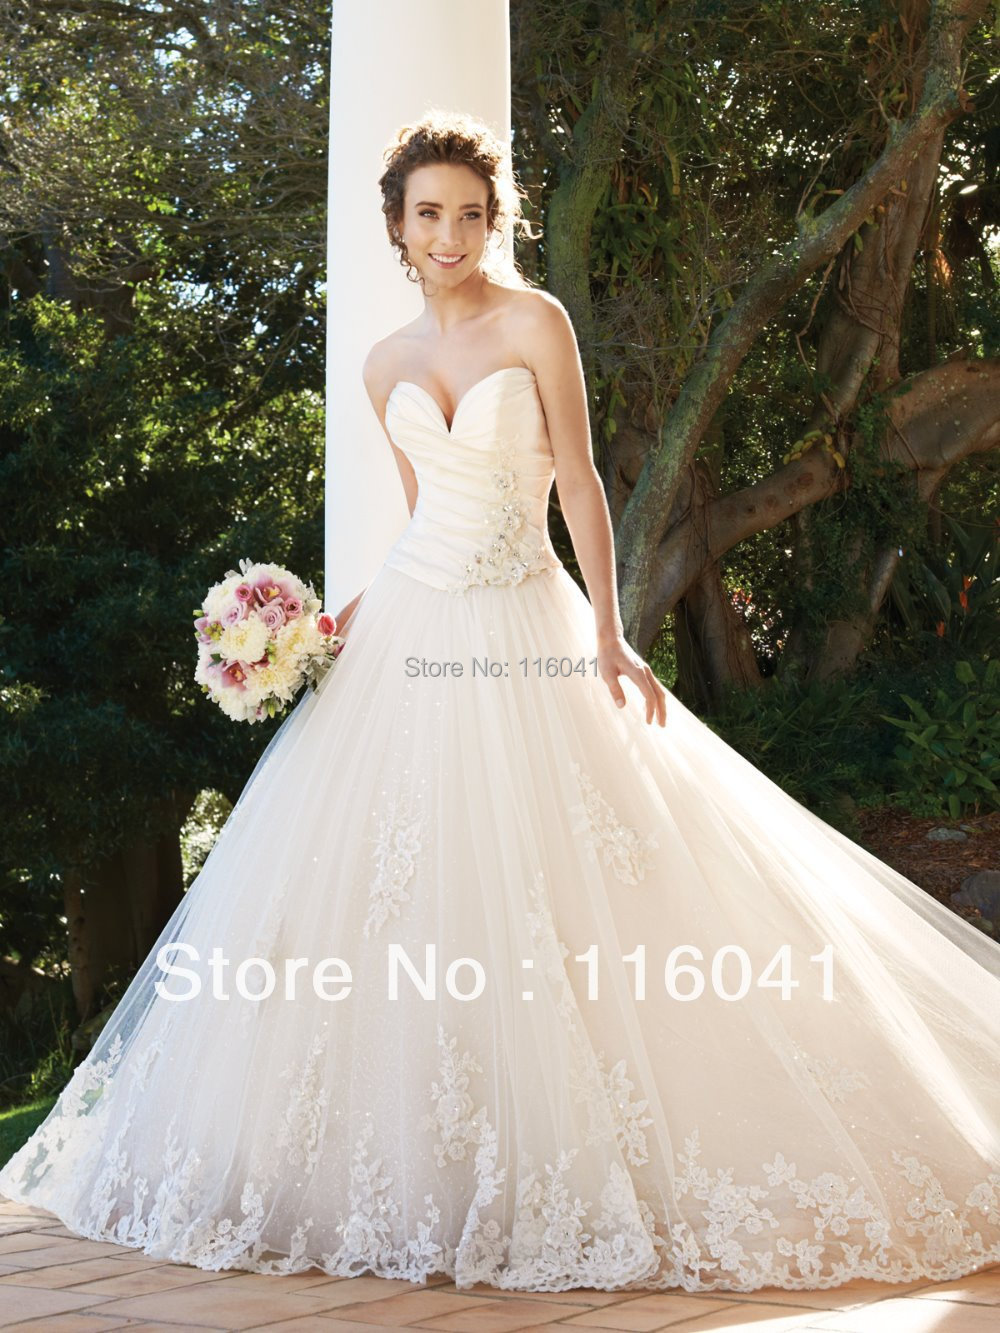 2016 All About font b Wedding b font New Style Princess Strapless Sweetheart Corset Tulle Lace